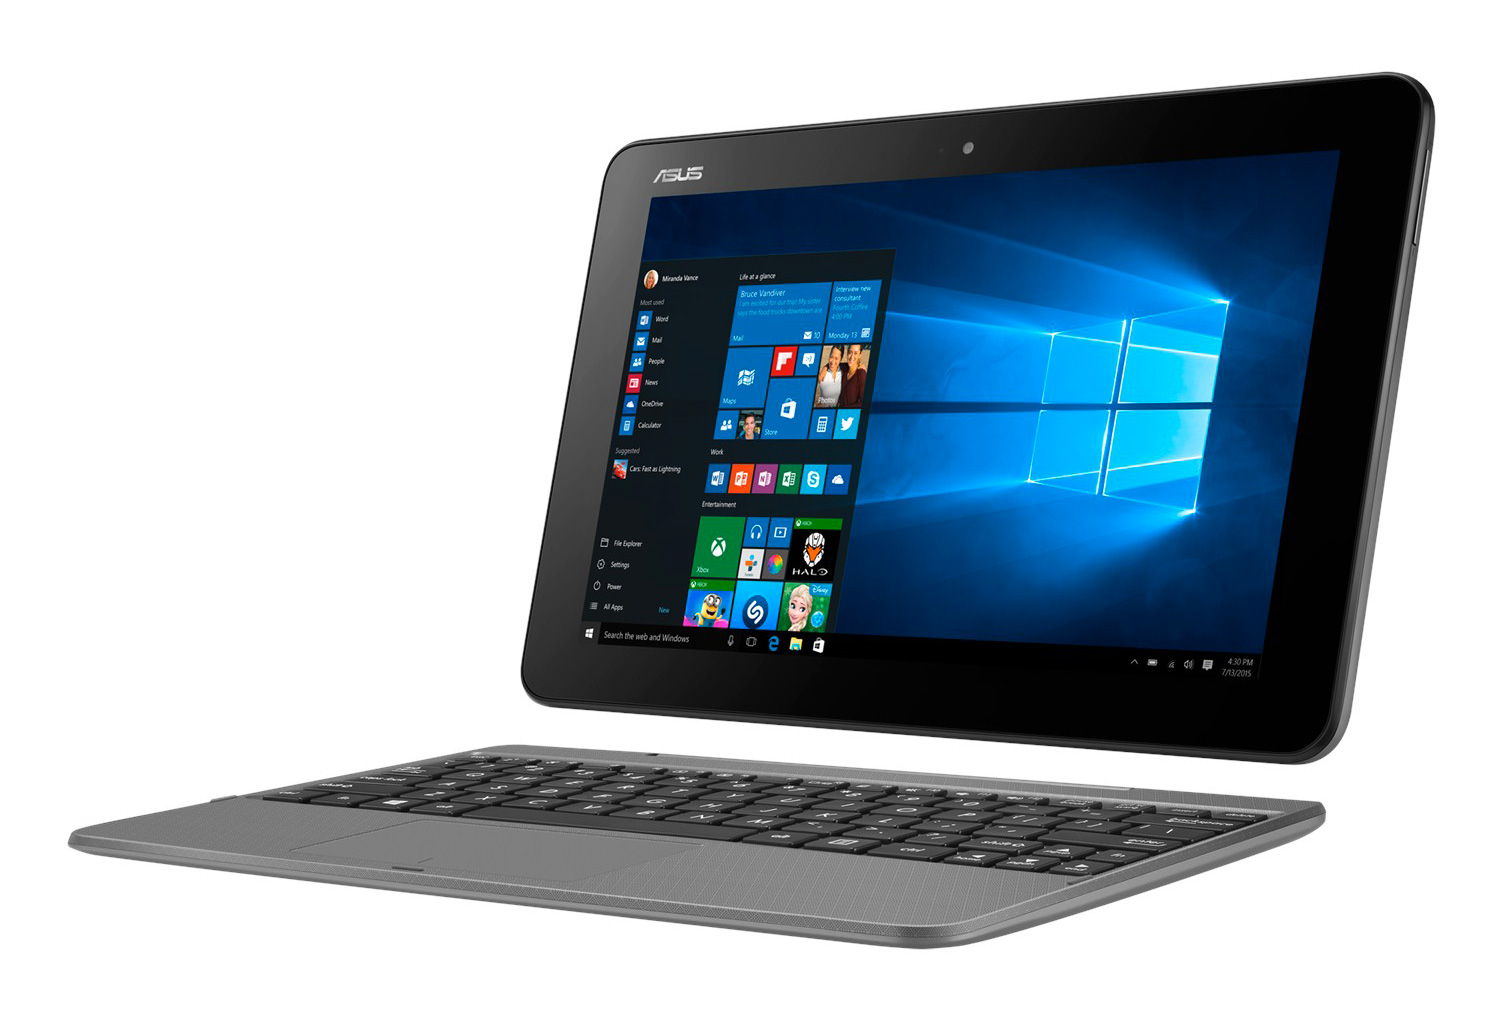 price of Asus Atom x5-Z8350 2GB 64G EMMC Win10 Home on ShopHub | ecommerce, price check, start a business, sell online